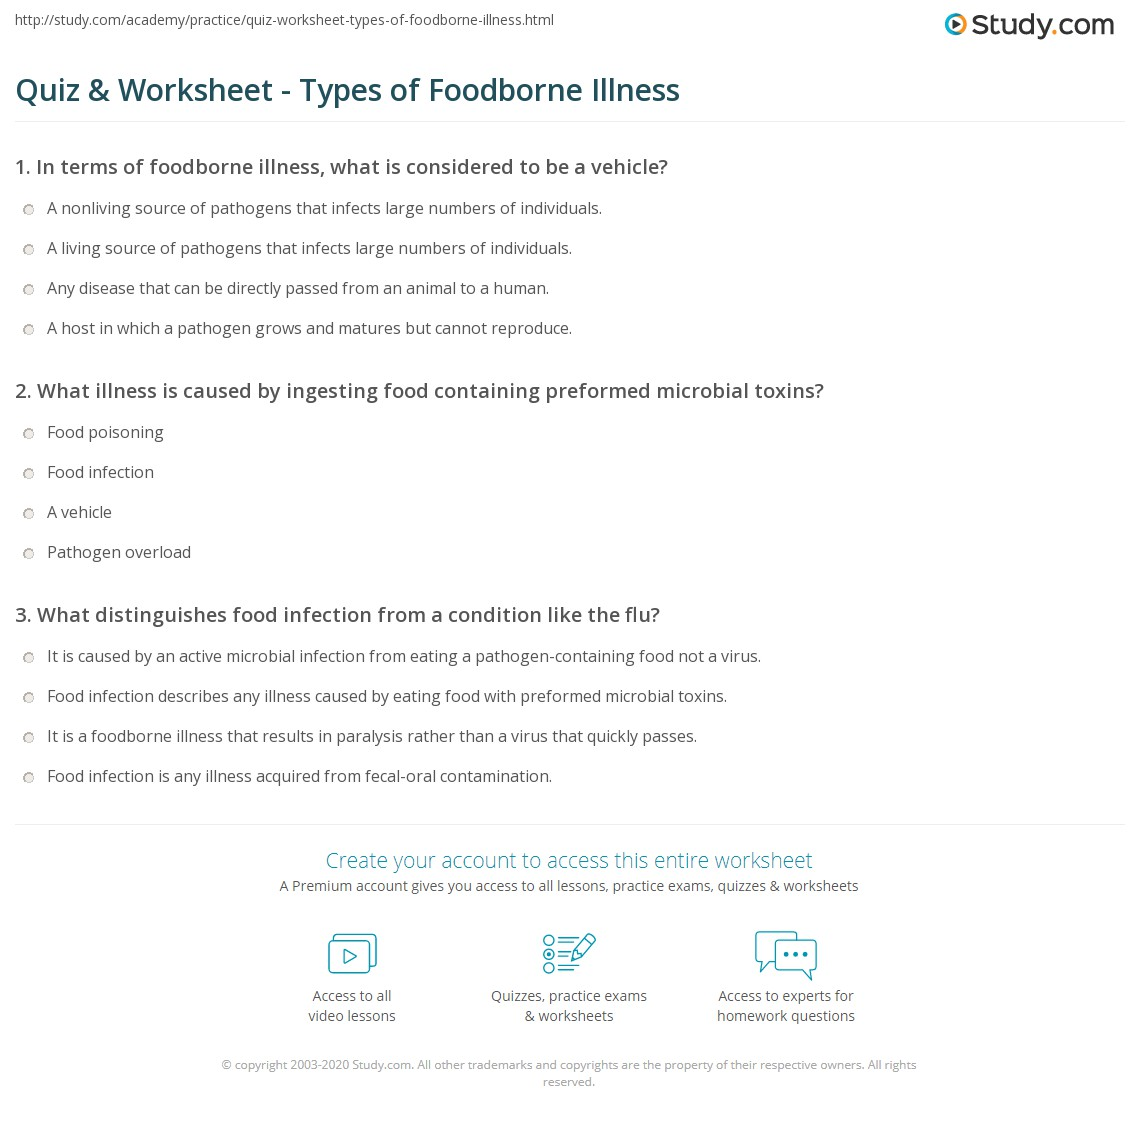 quiz & worksheet - types of foodborne illness | study